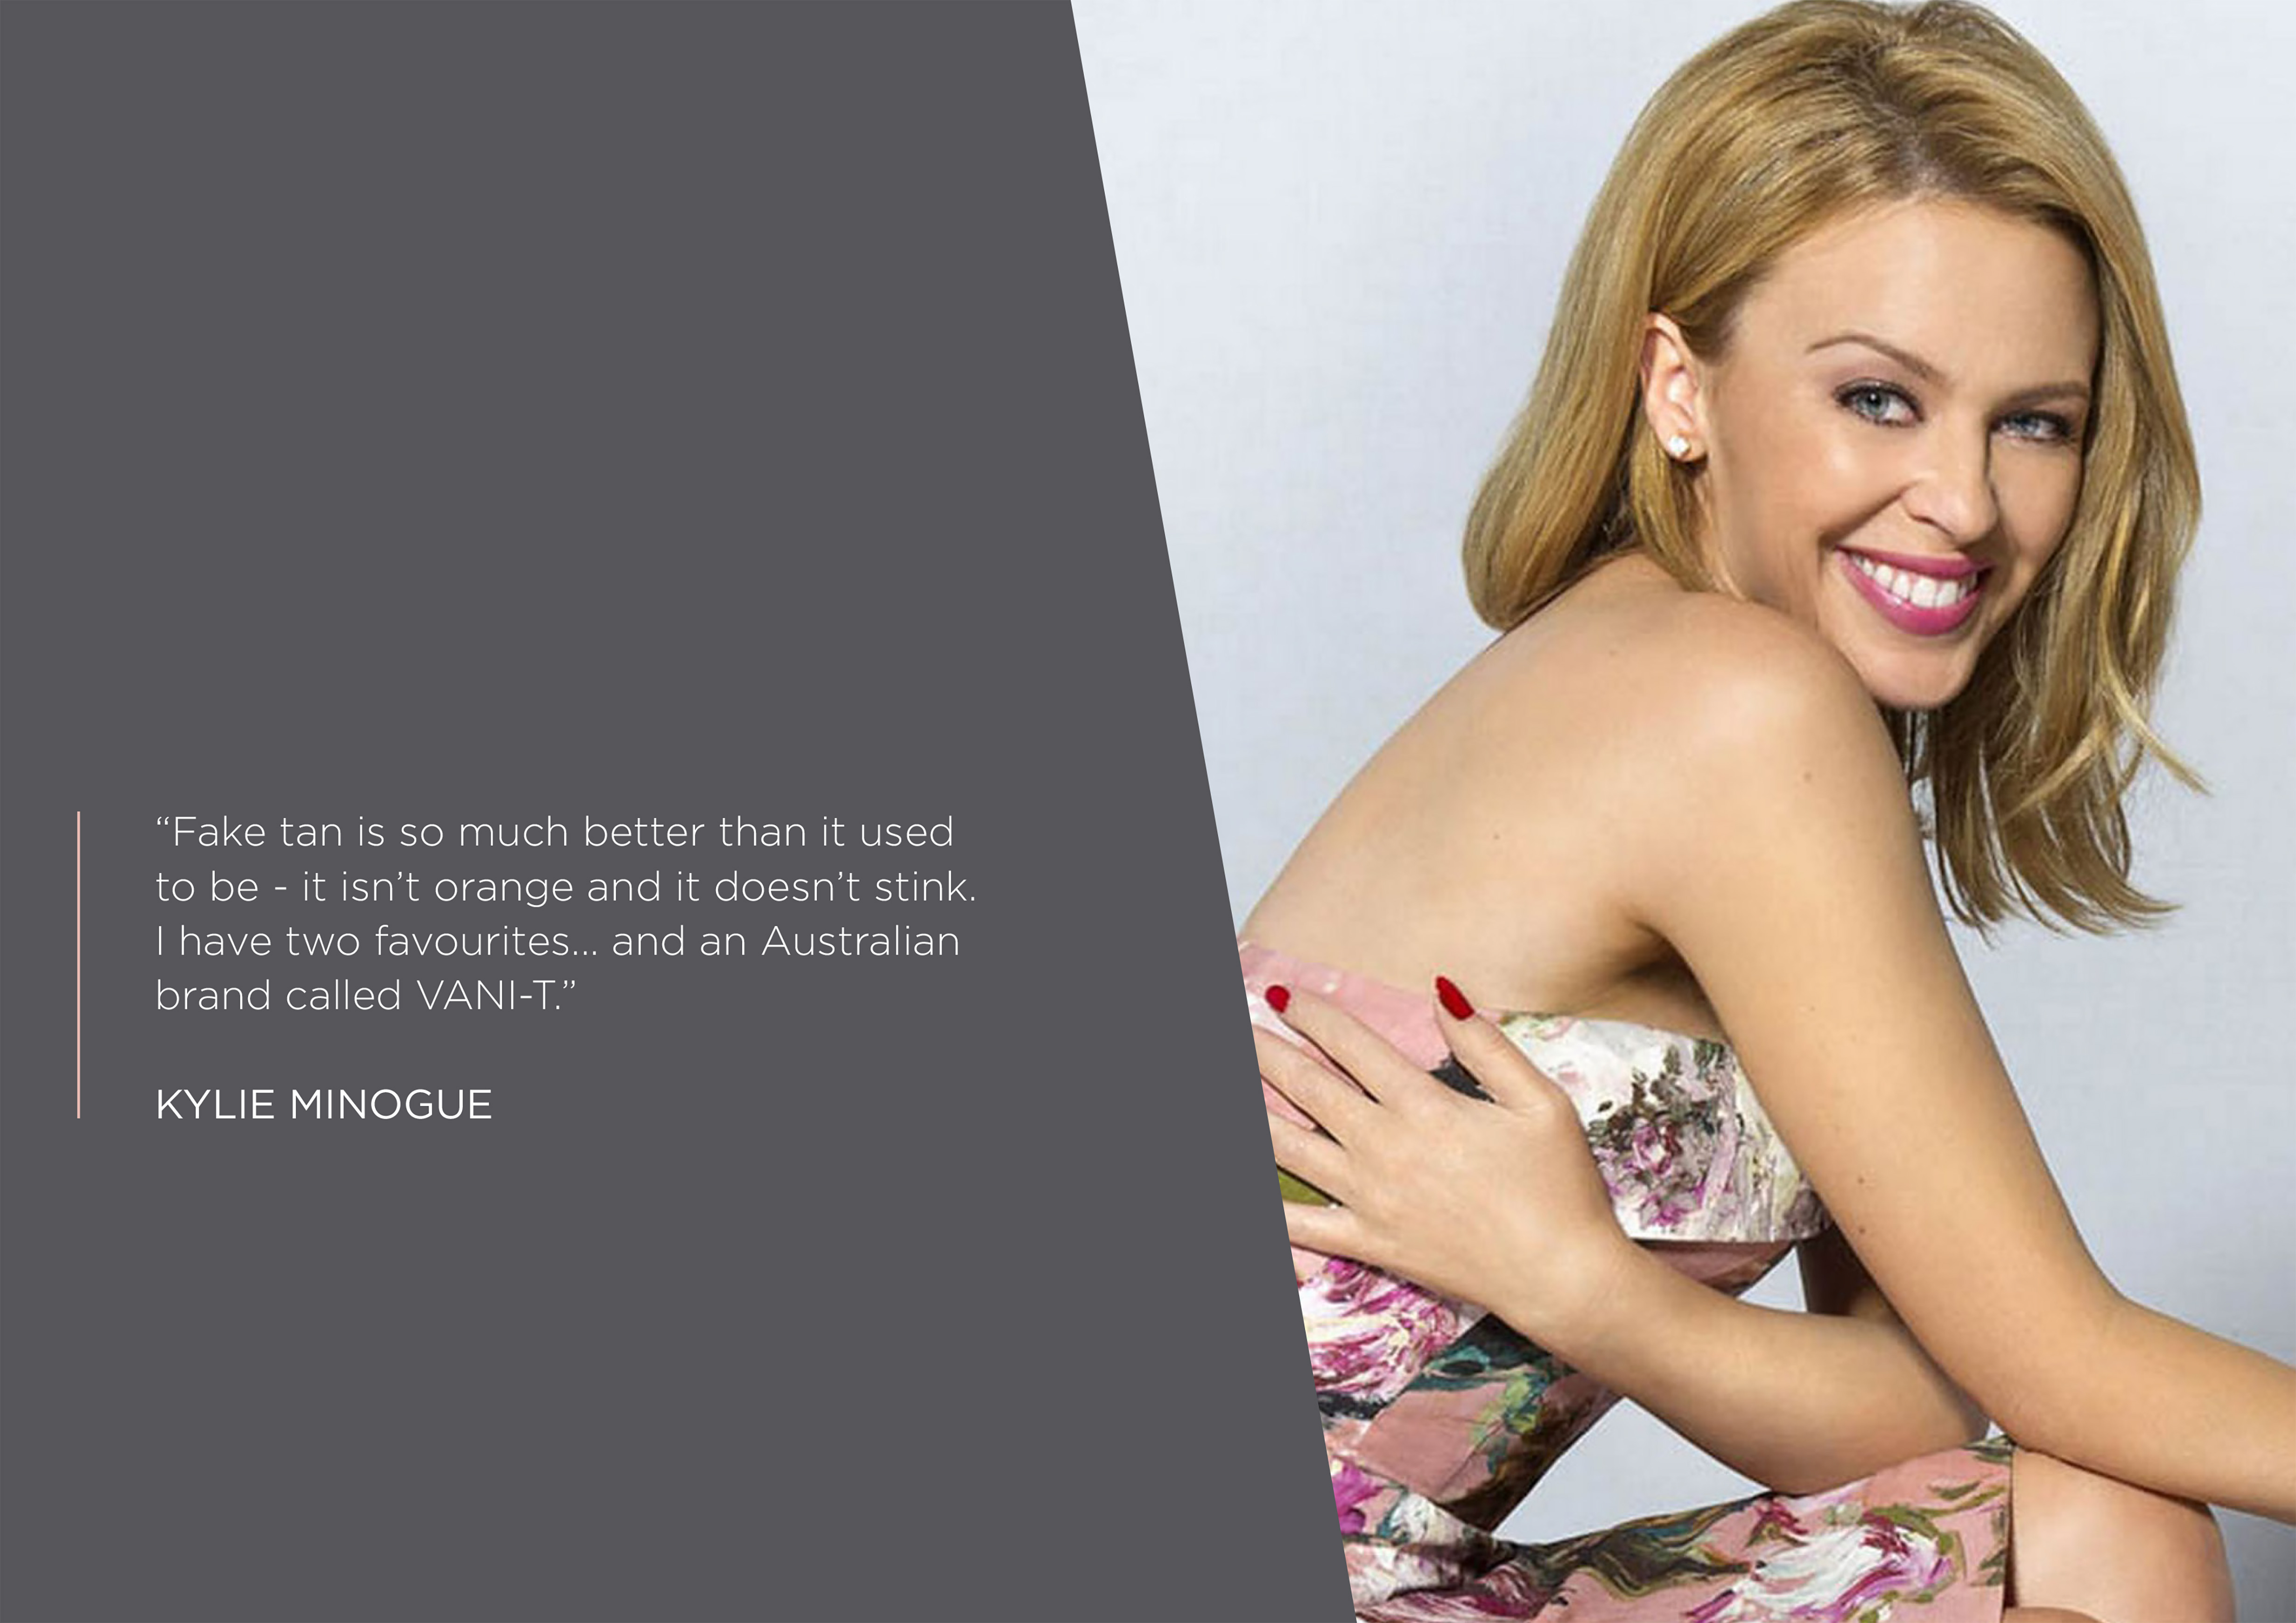 Kylie Minogue Uses Vani-T